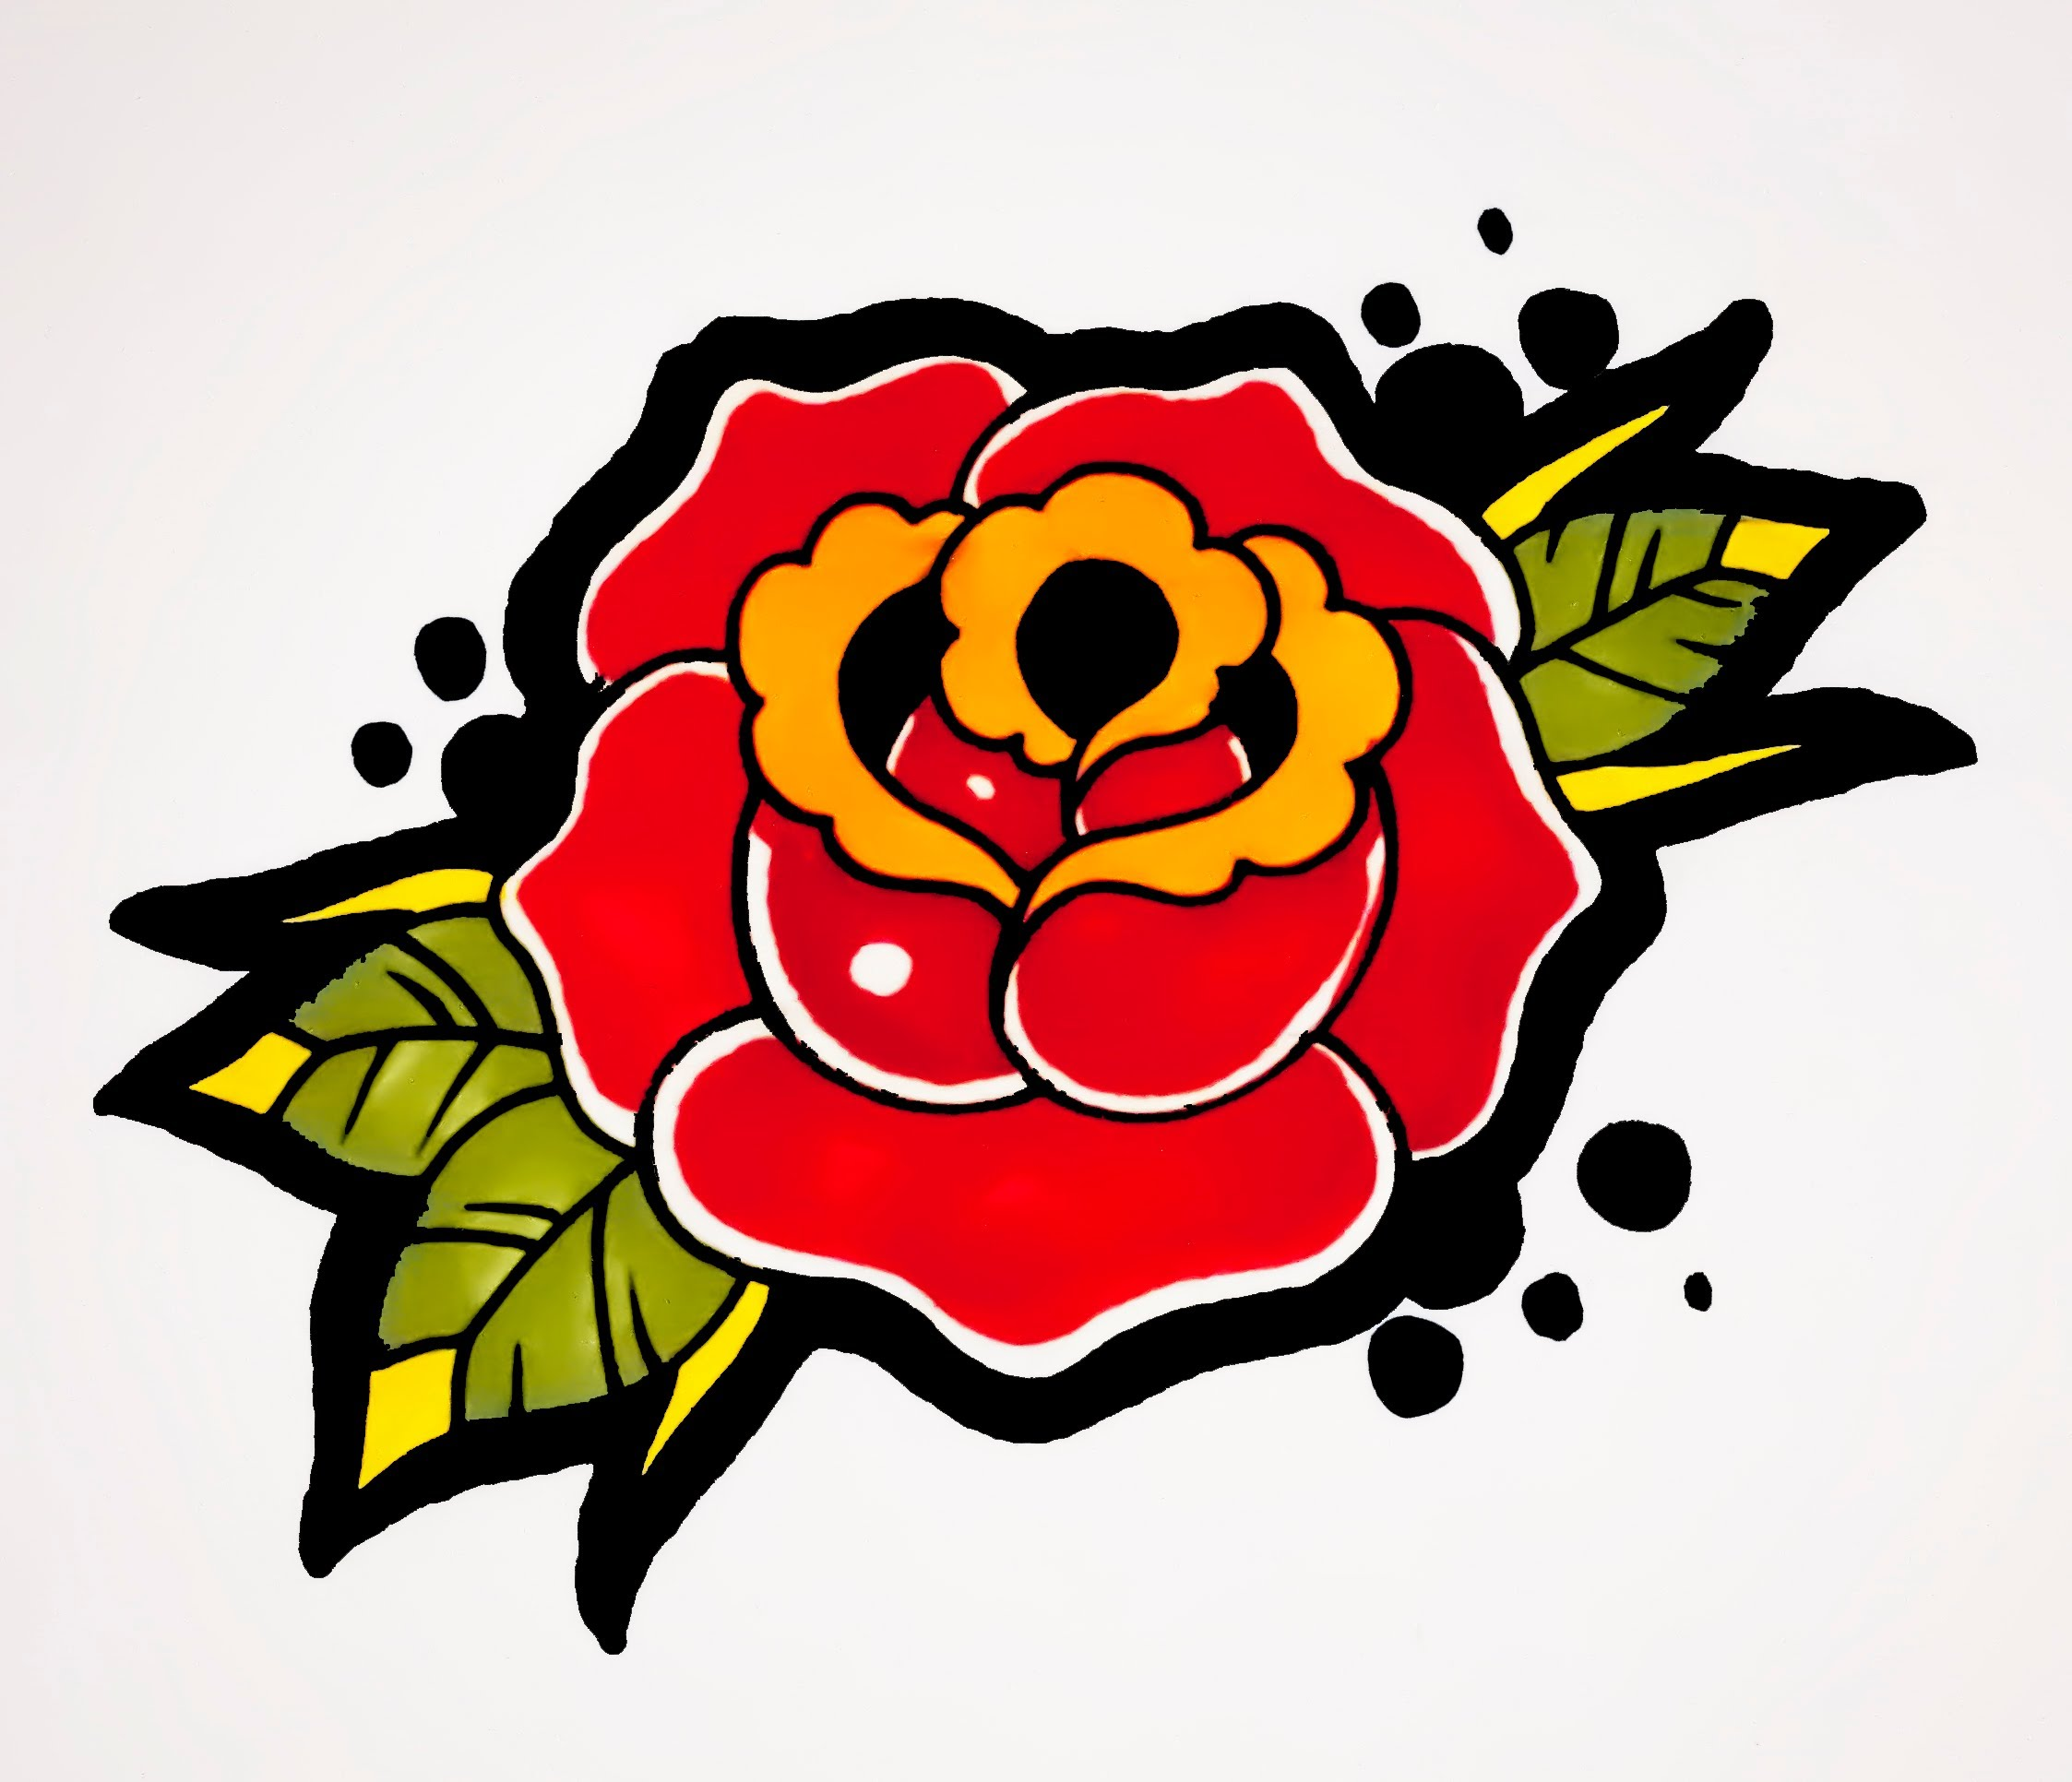 2246x1932 How To Draw A Rose Old School Tattoo Style